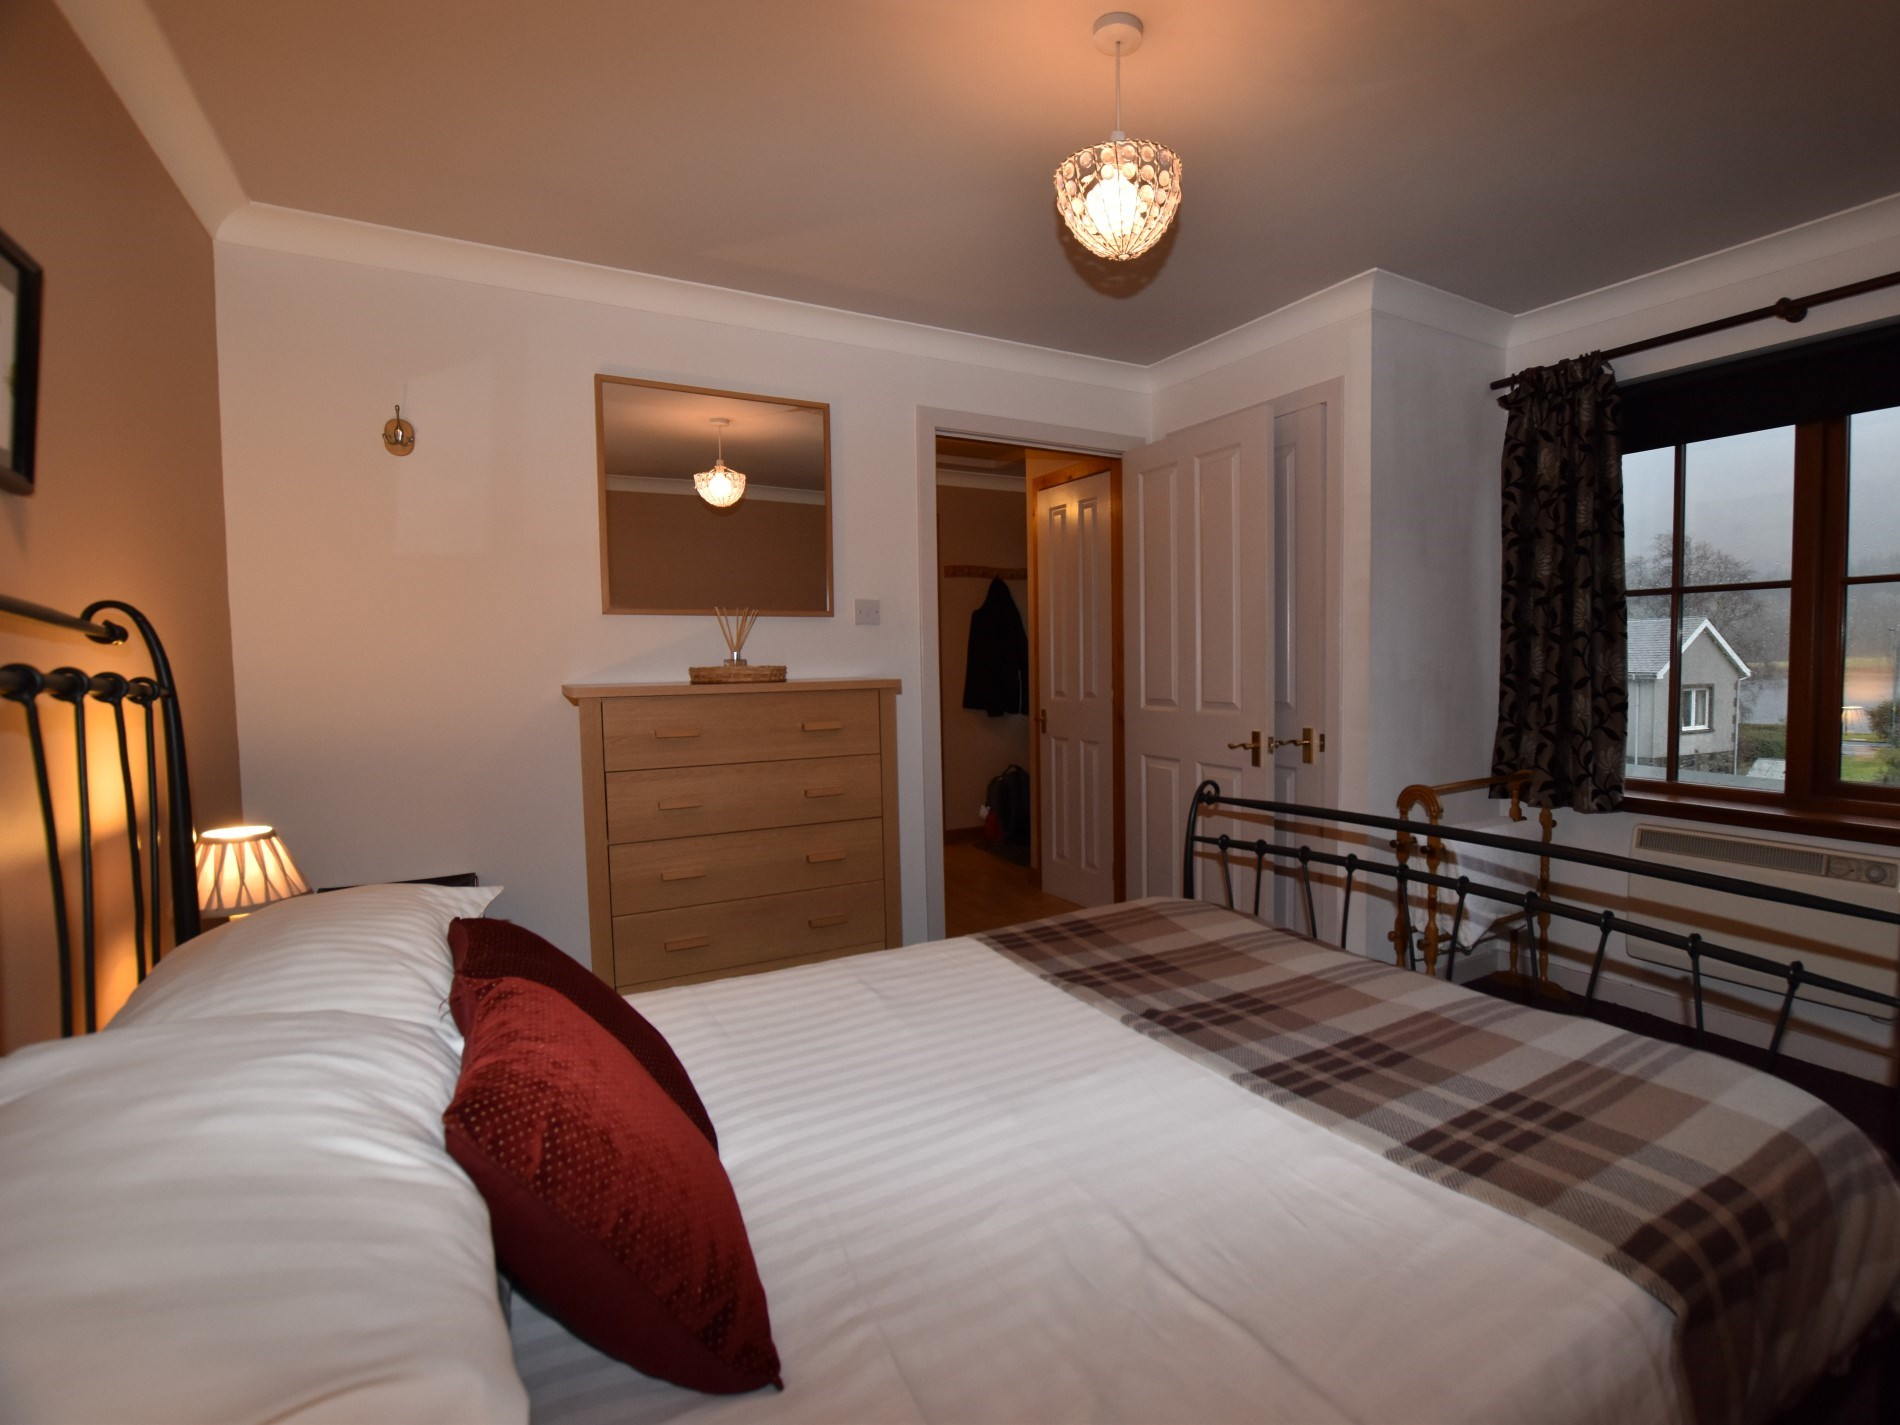 1 Bedroom Cottage in Crieff, Perthshire, Angus & Fife